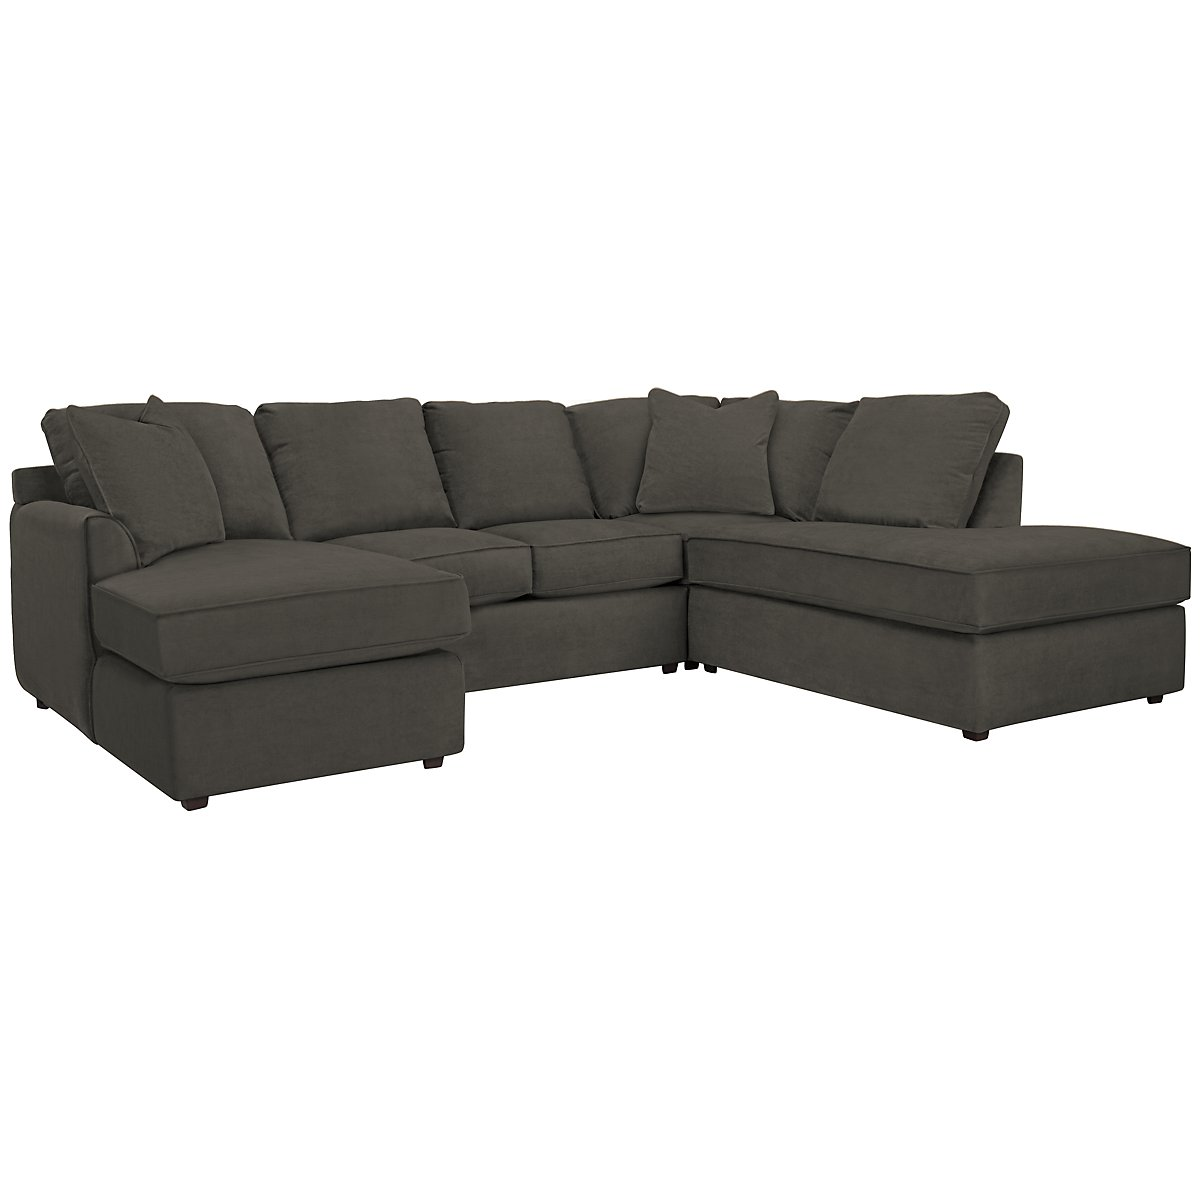 Express3 Dark Gray Microfiber Small Right Bumper Sectional